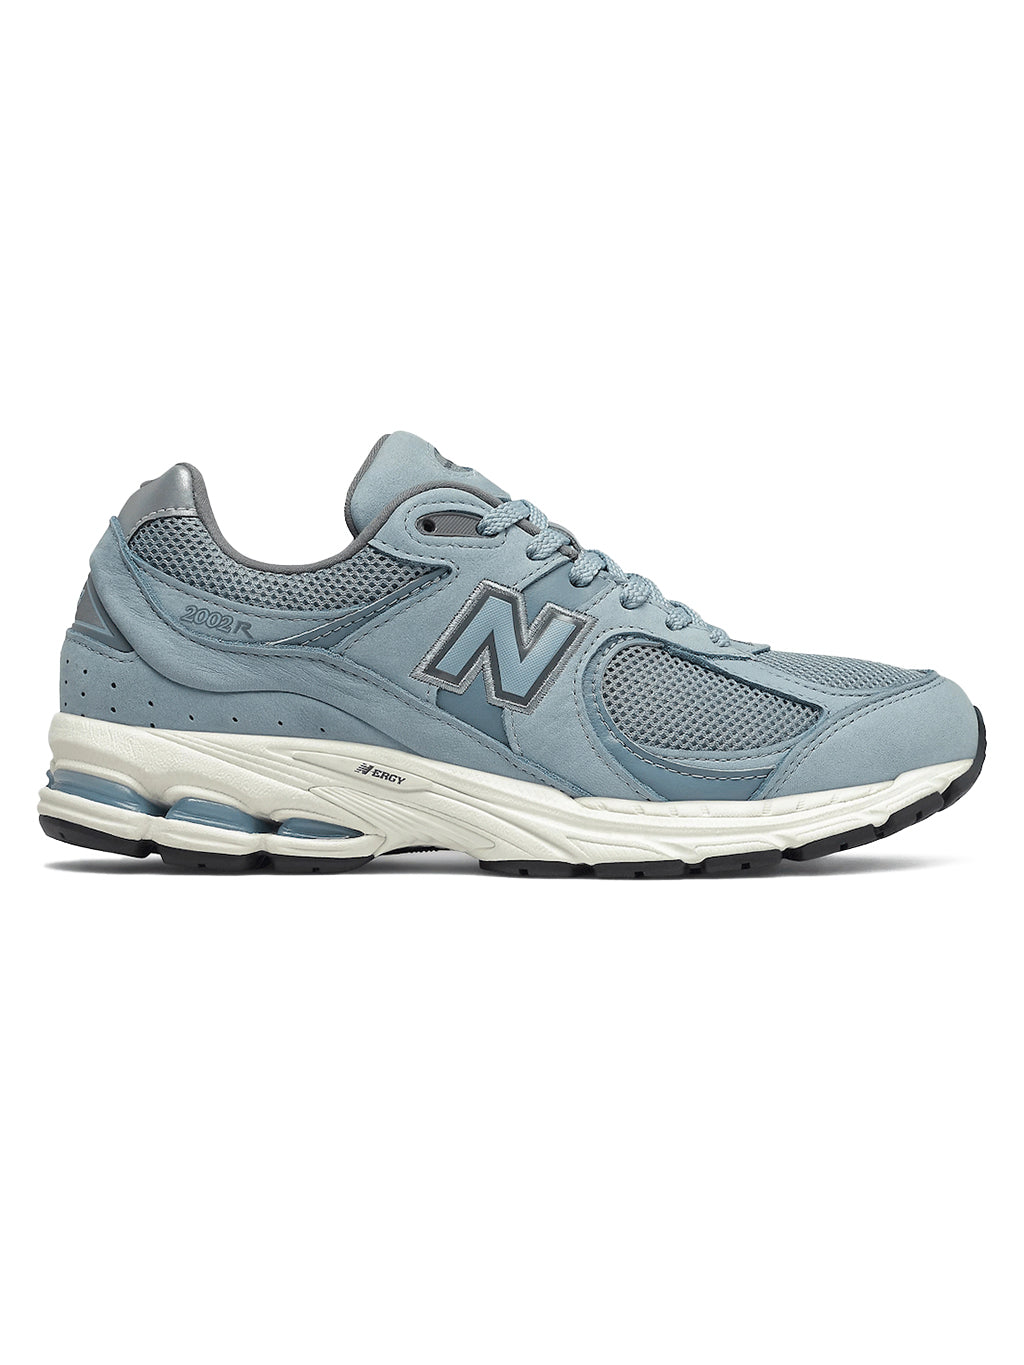 Light Blue 2002 Sneakers